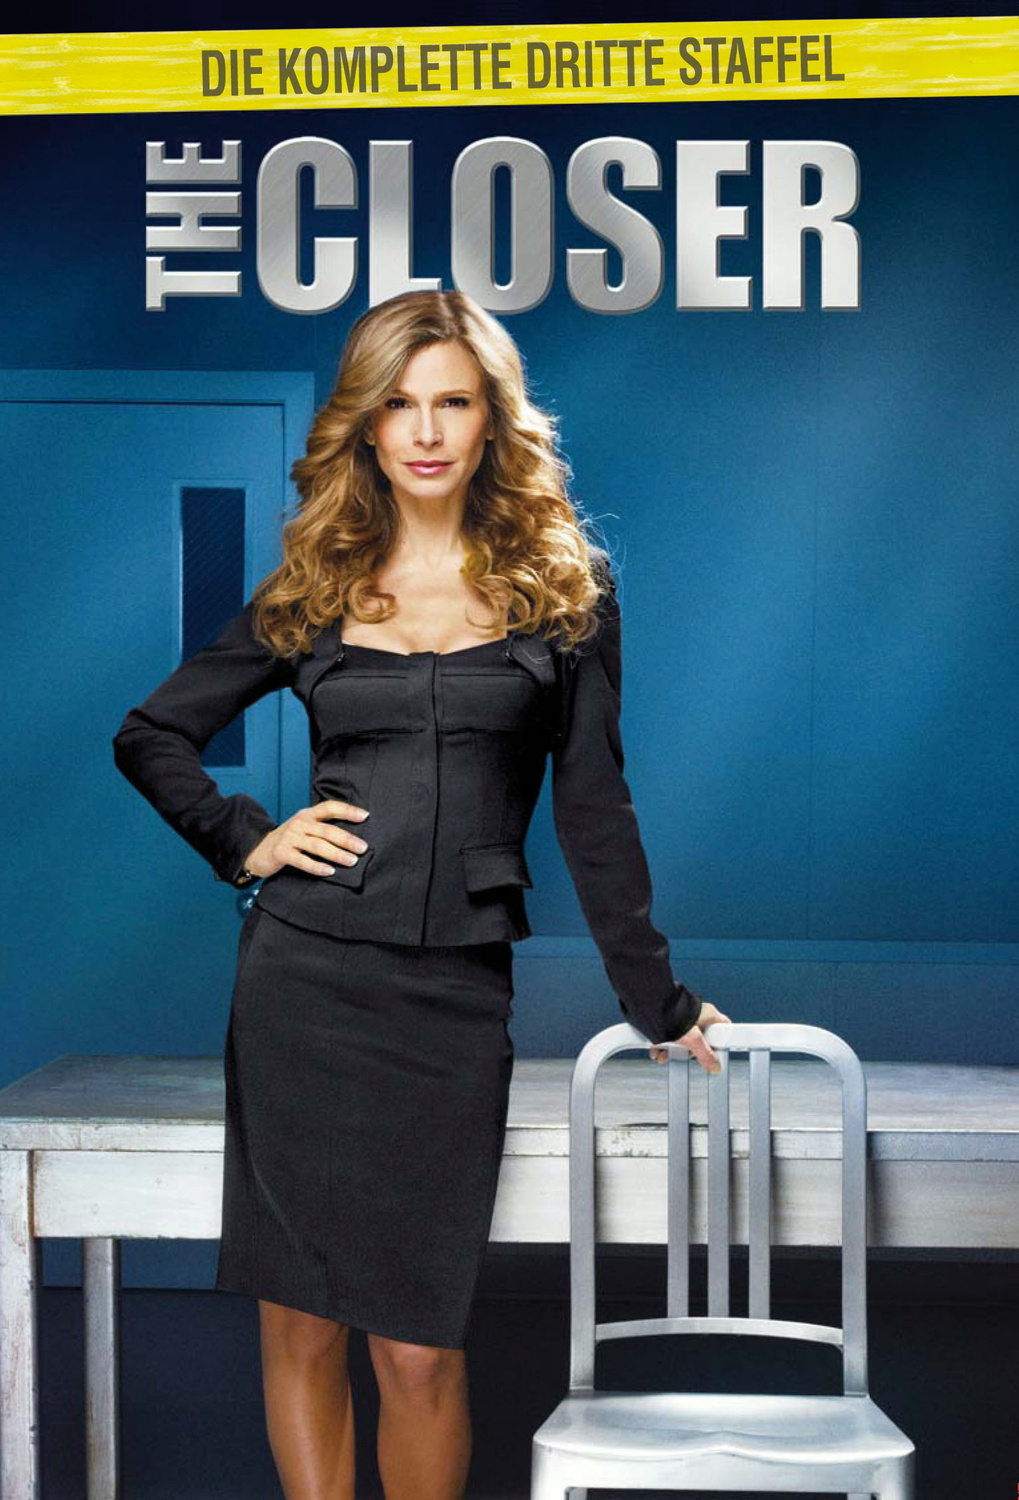 The Closer - Staffel 3